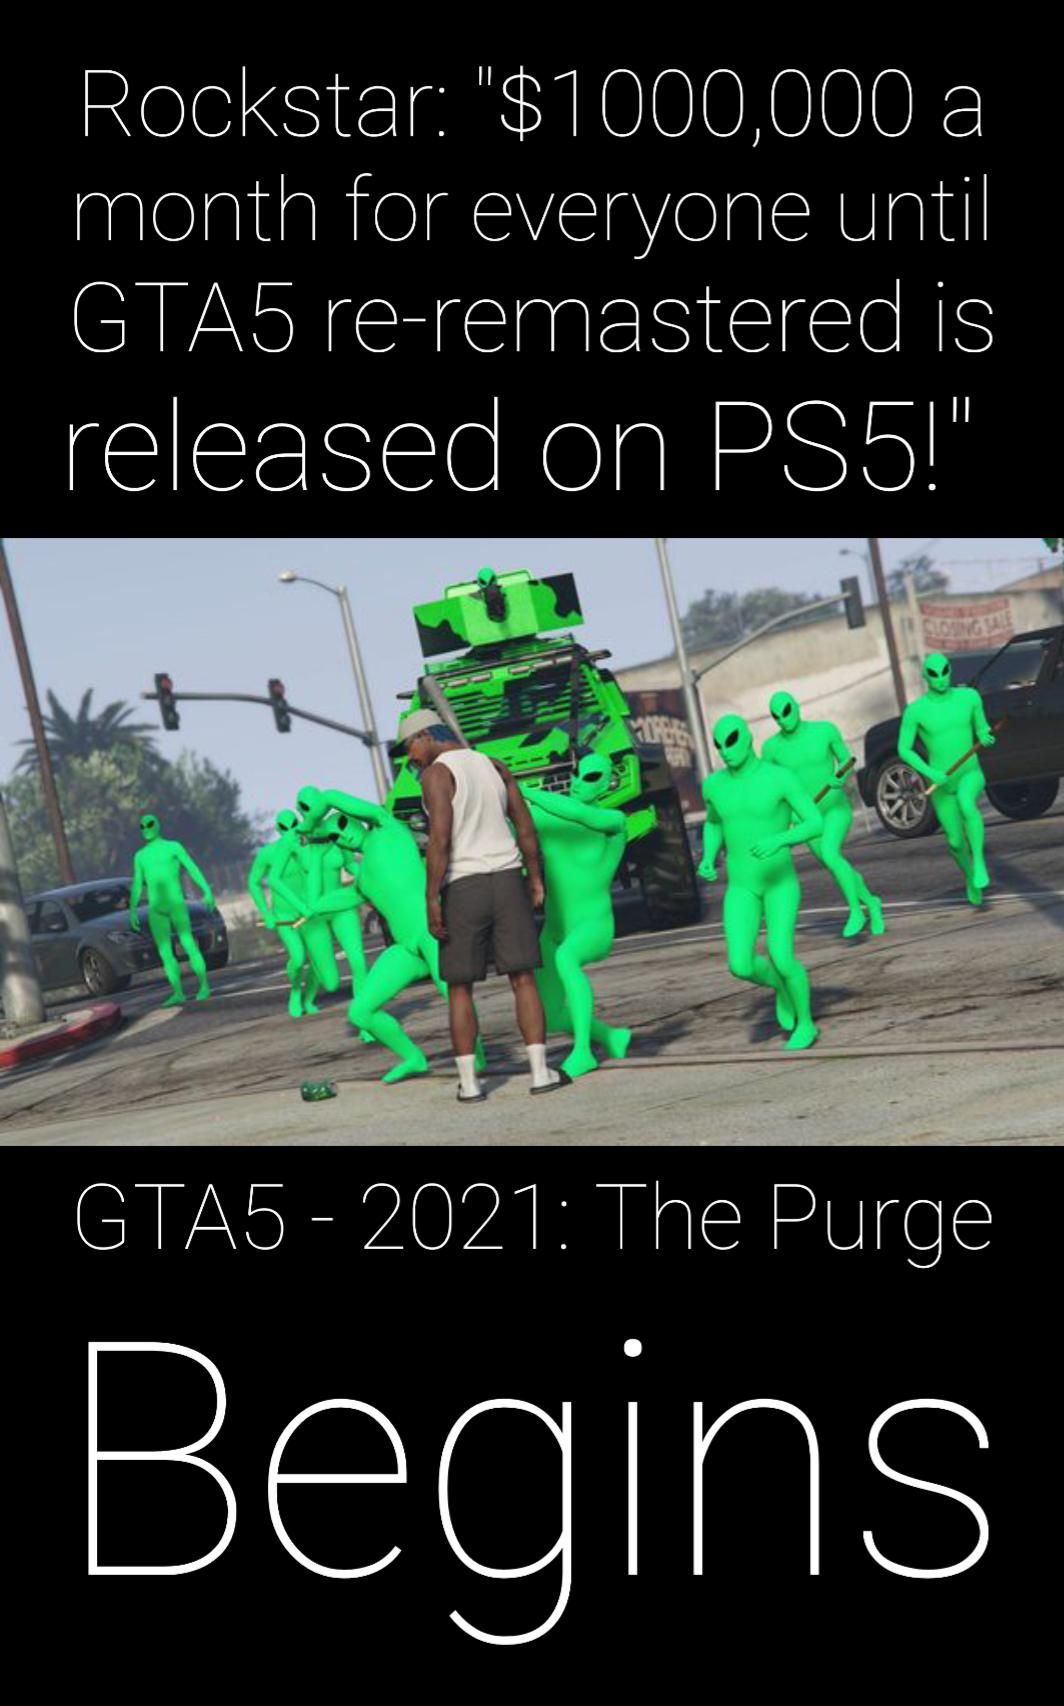 Grand Theft Auto 5 On Ps3 Was Unplayable Upon The Playstation 4